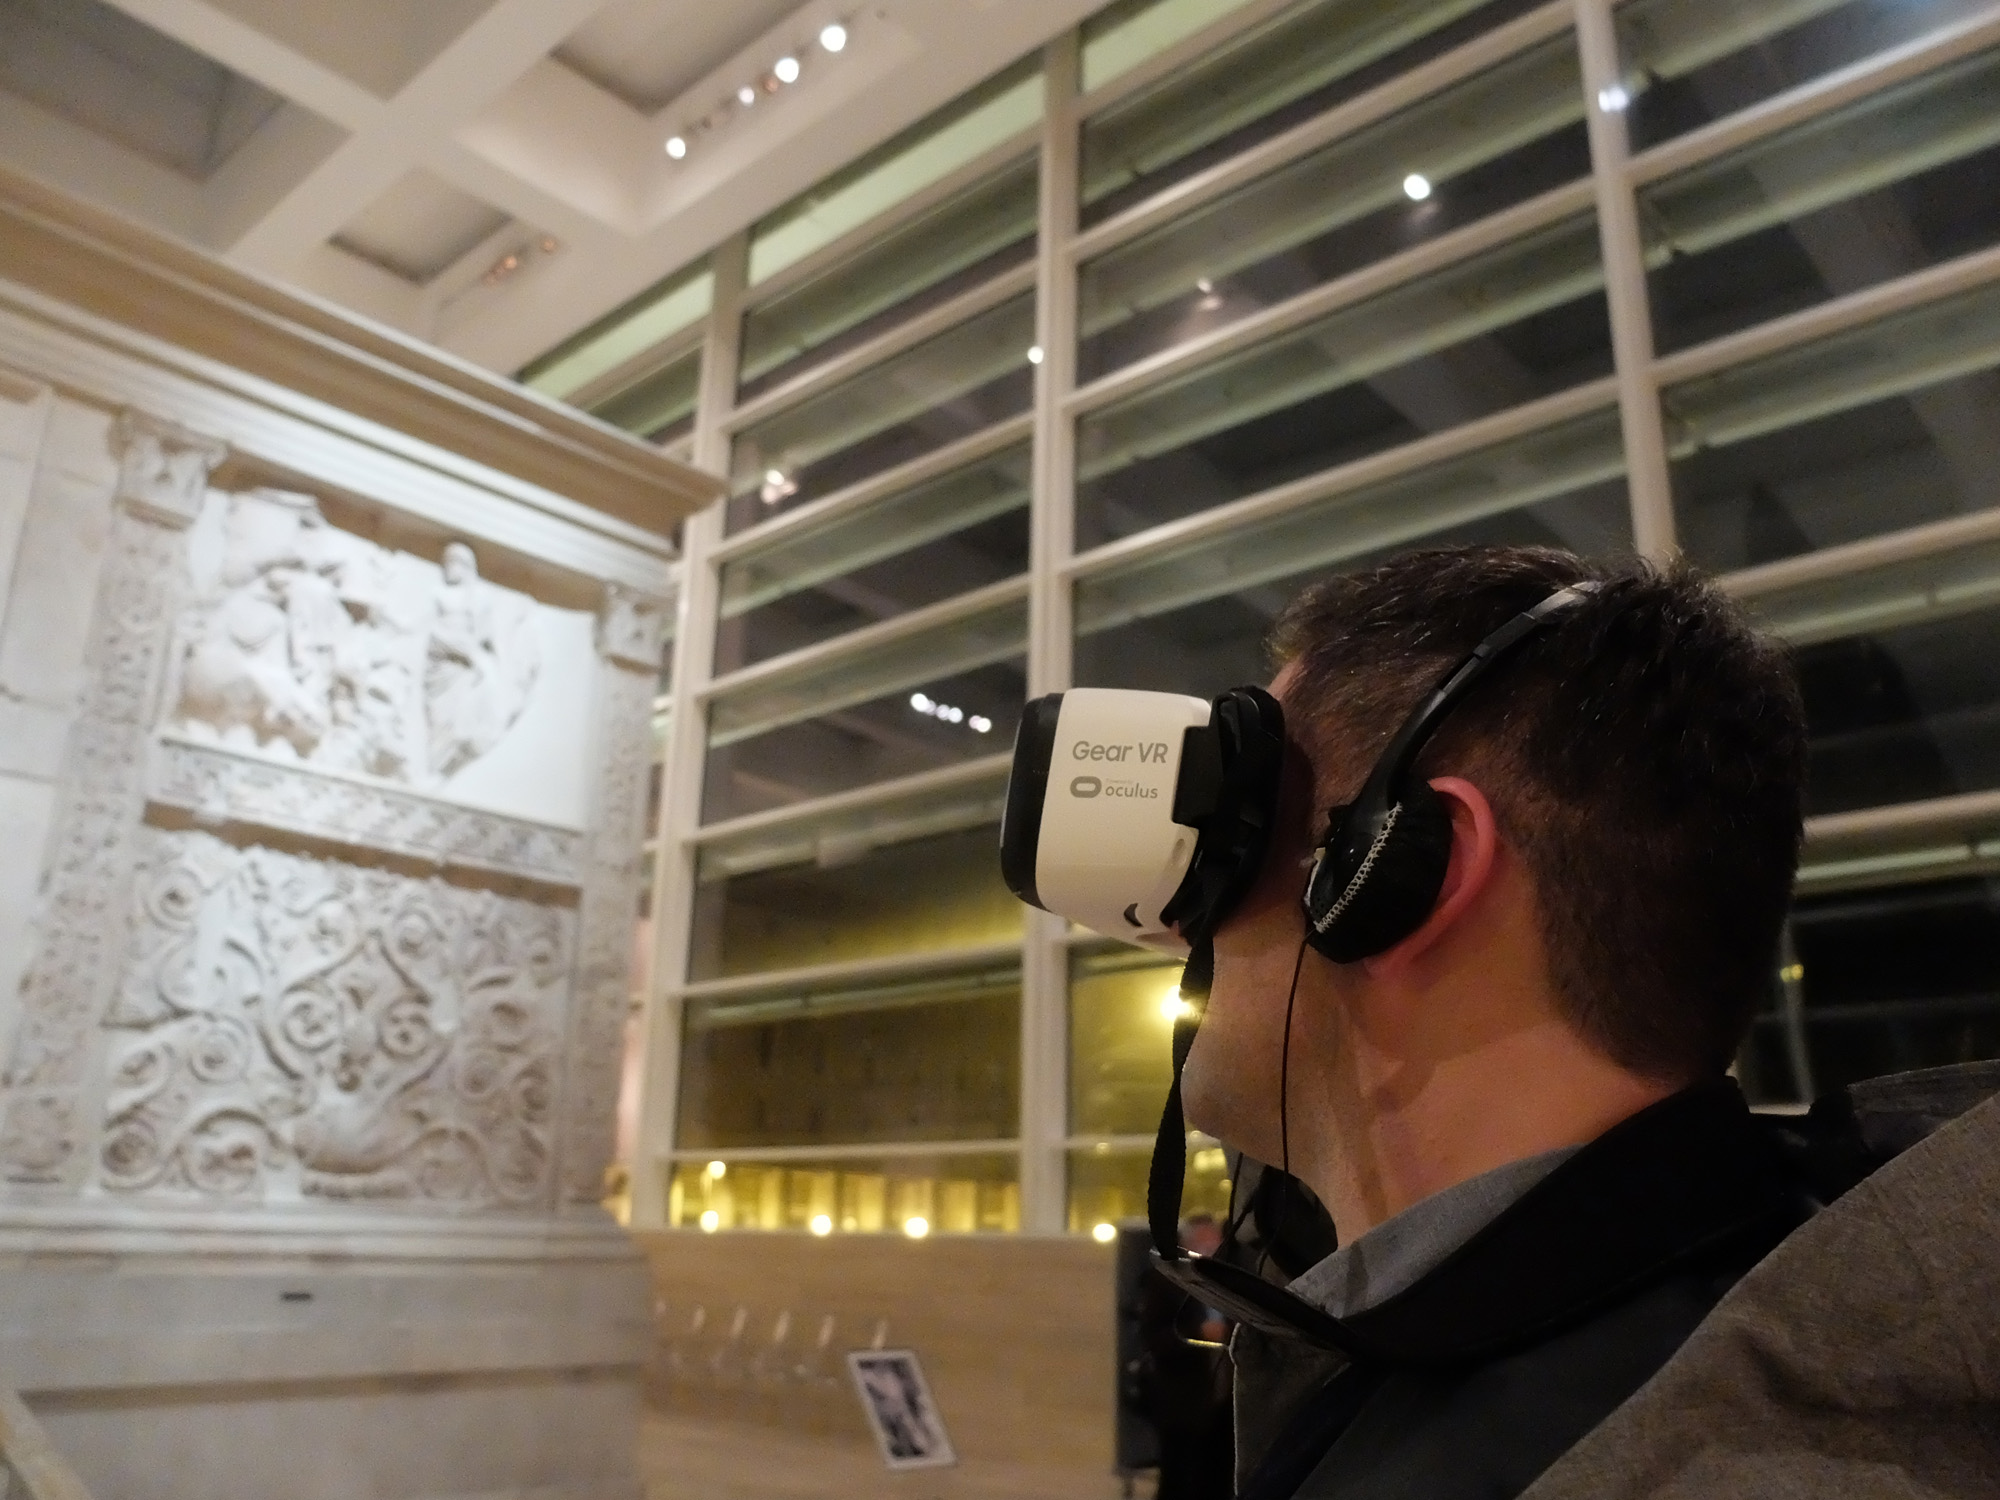 Looking at the ara pacis